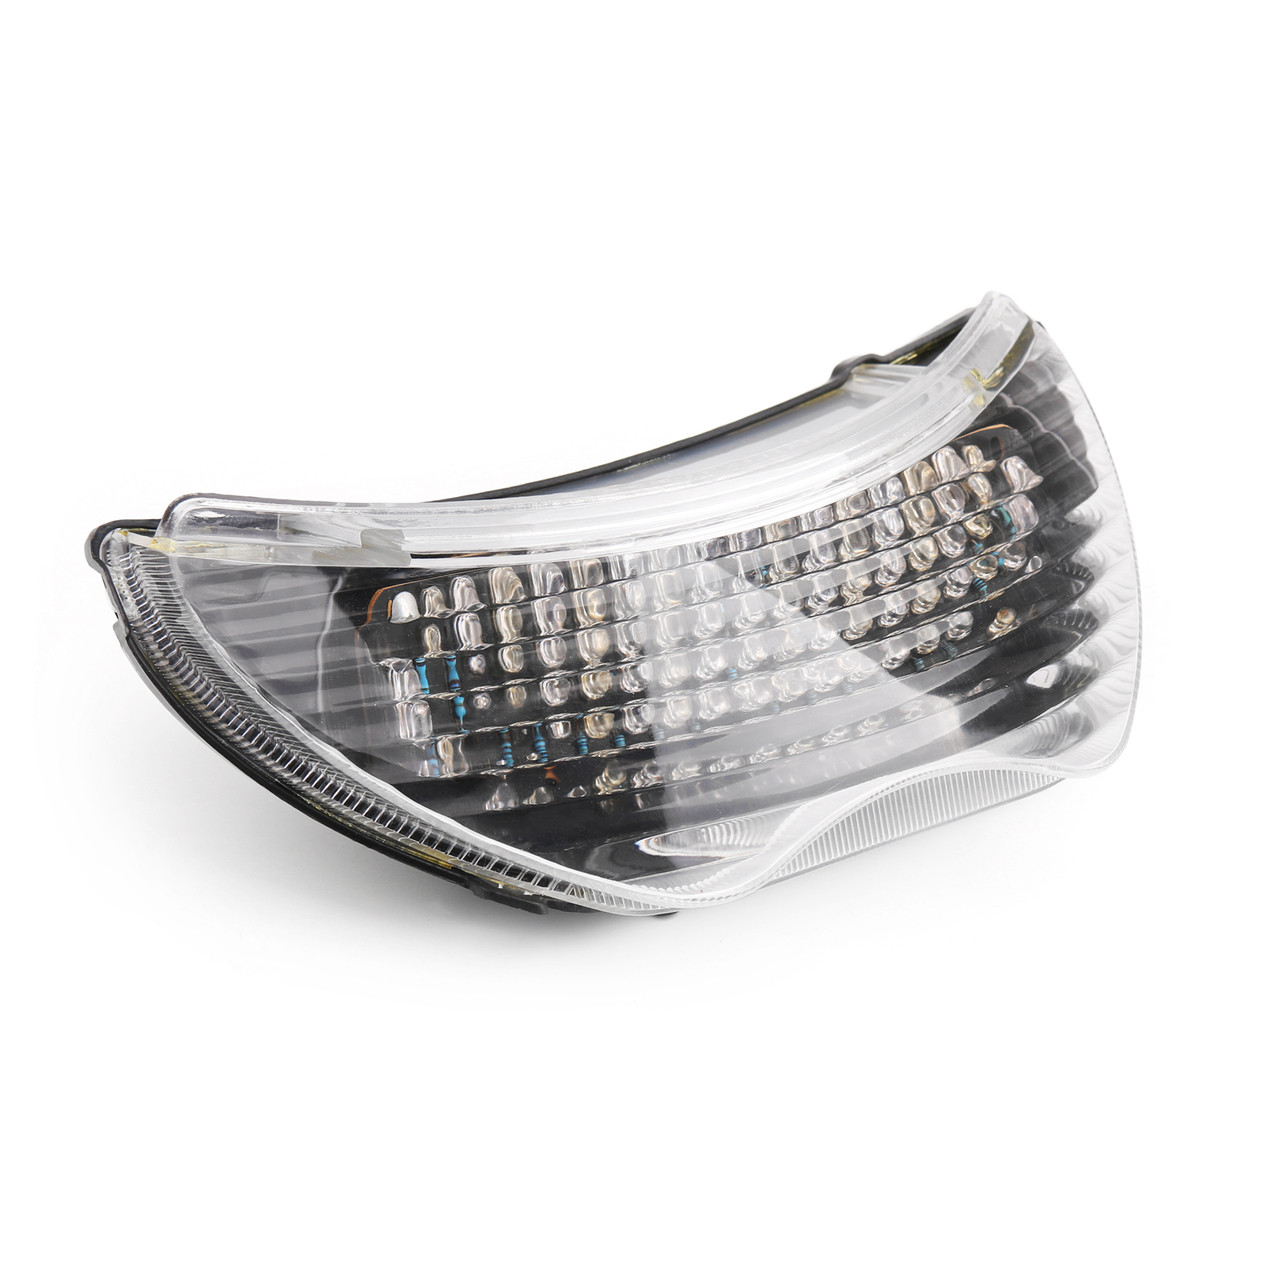 Integrated LED TailLight Turn Signals For Honda CBR 600 F4 F4i CBR 900 RR Clear